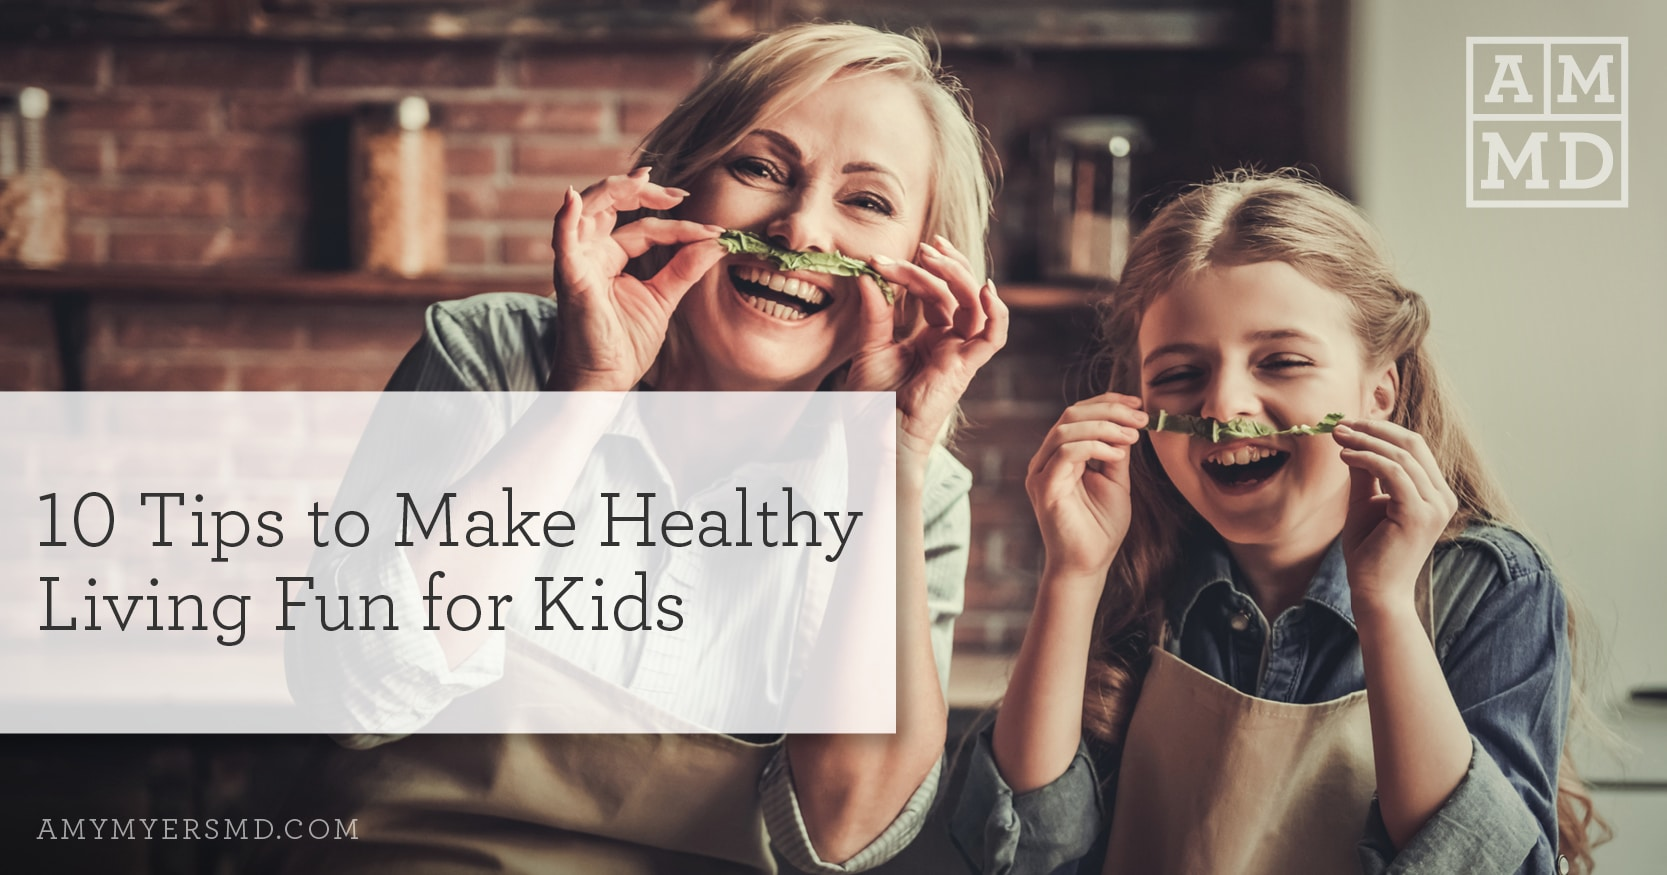 How To Make Healthy Living Fun For Kids